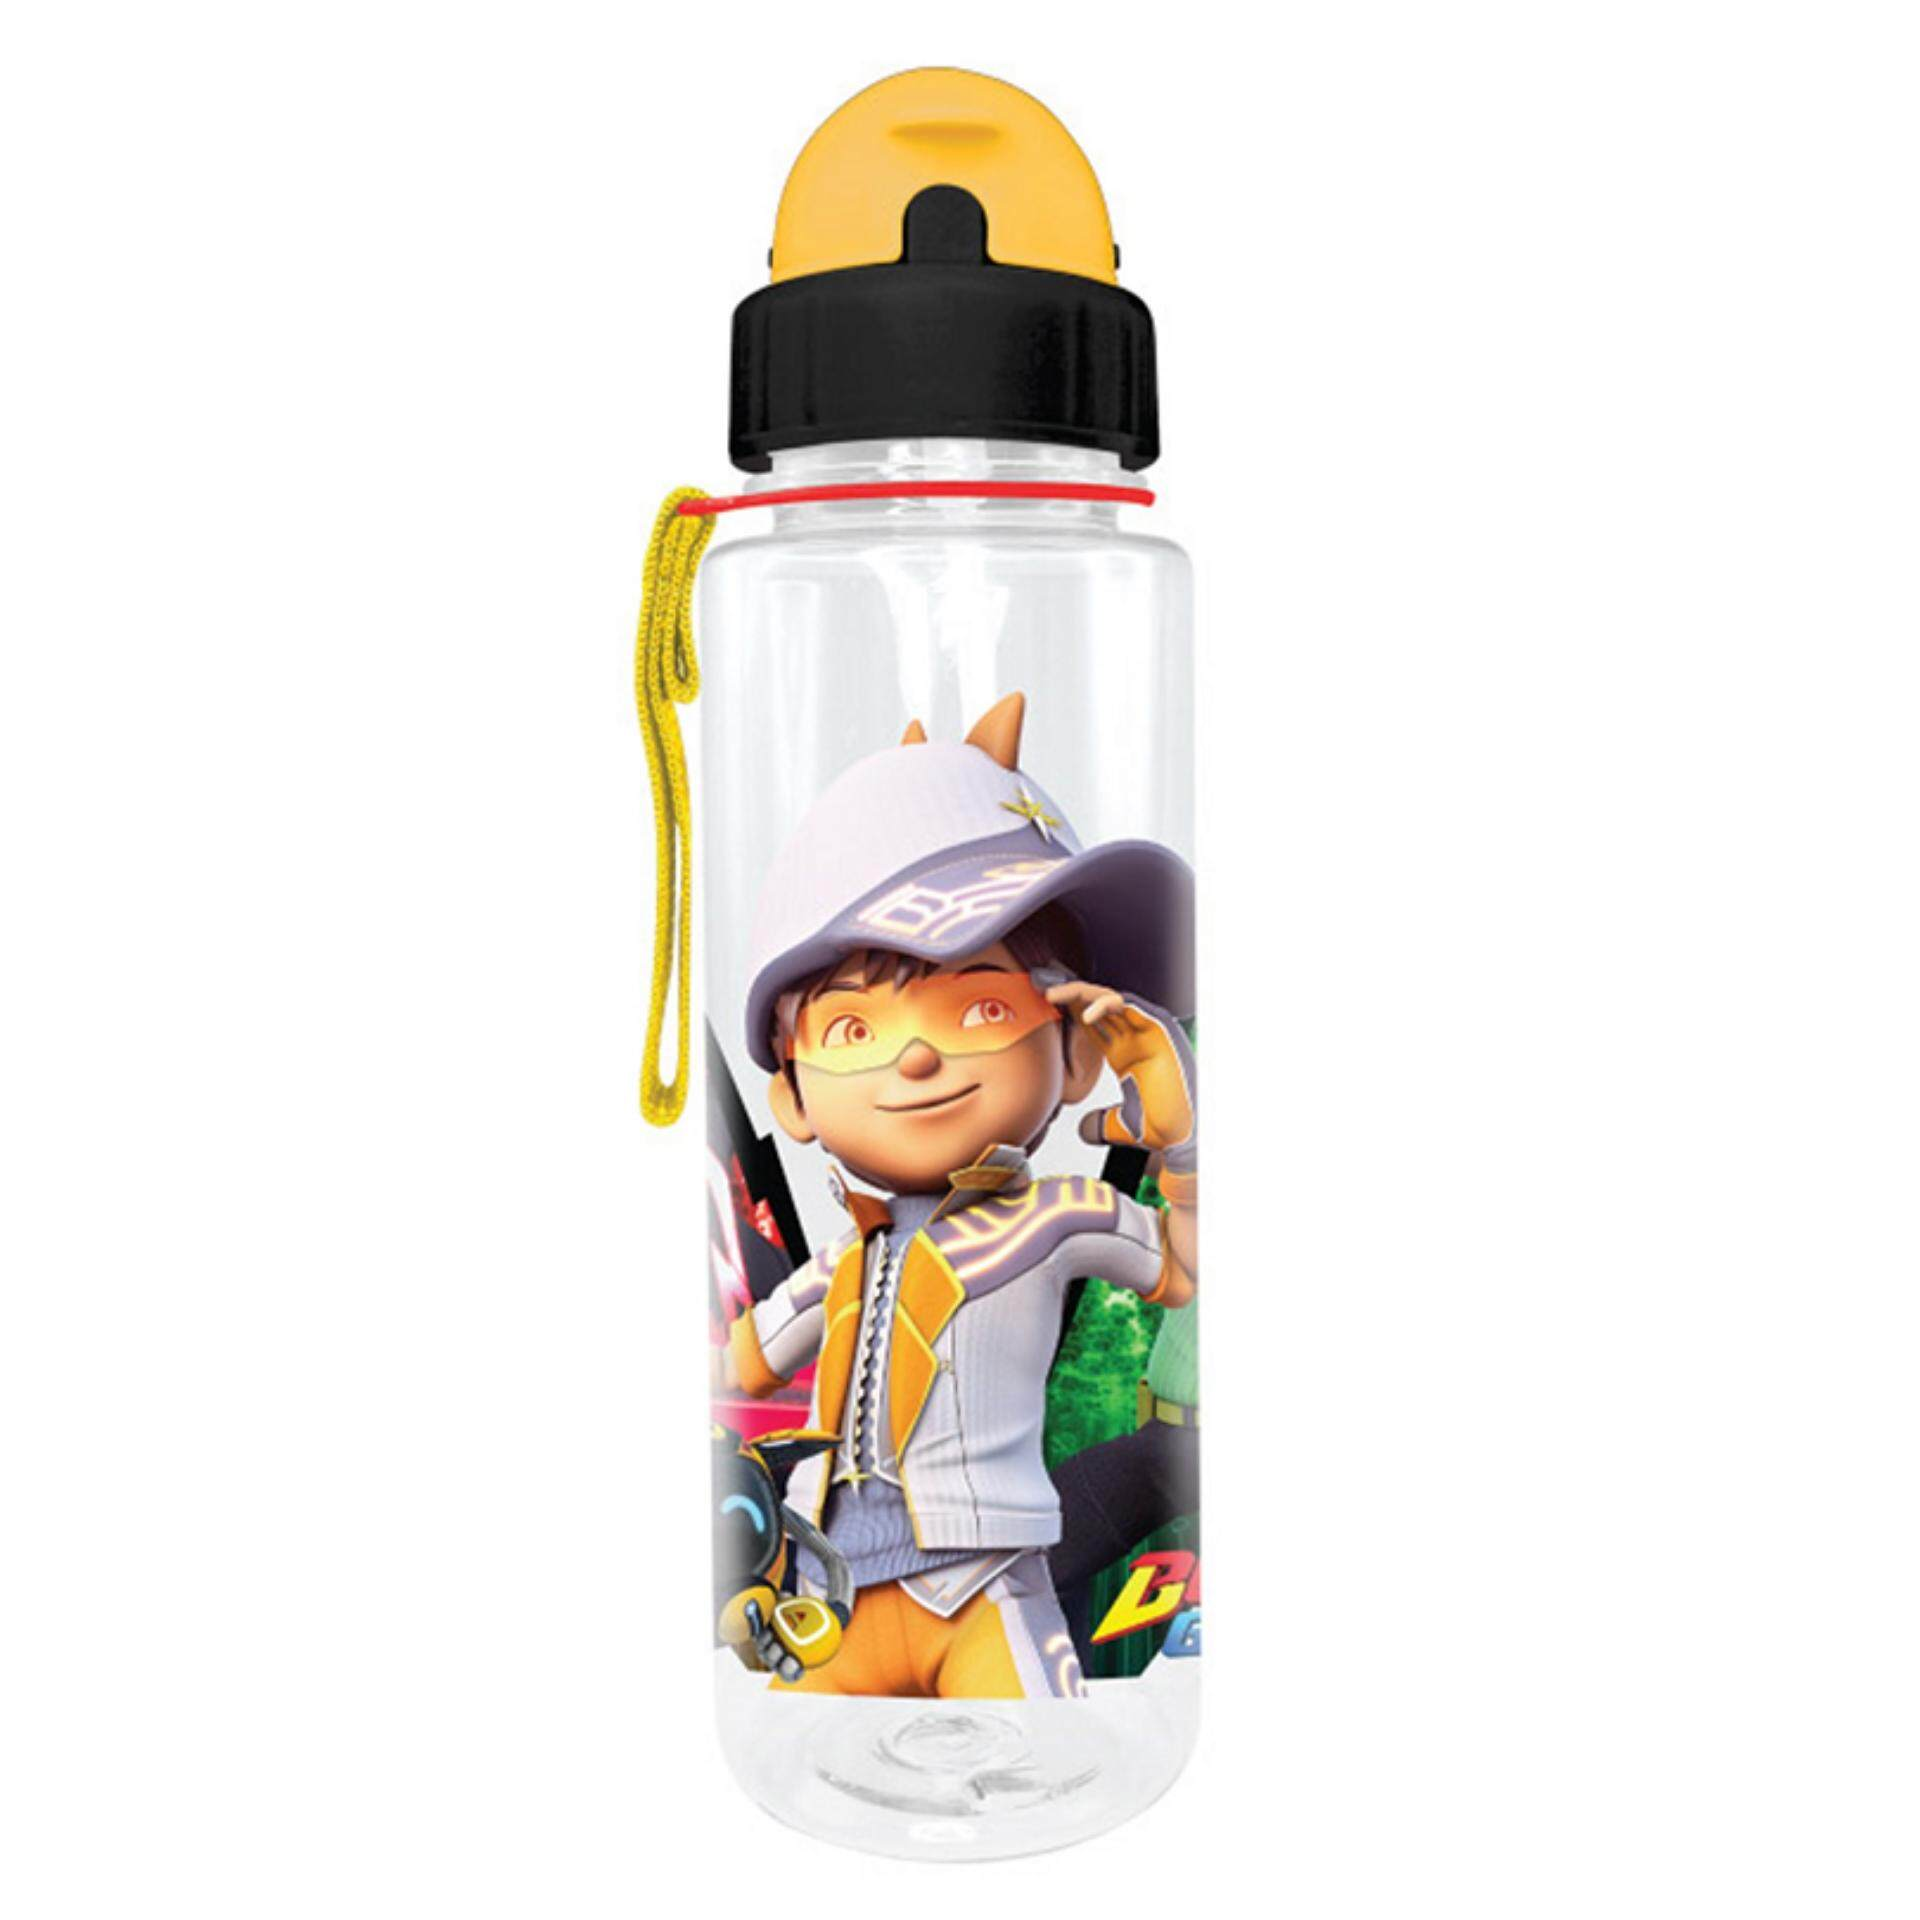 Boboiboy 650ML Tritan Bottle With Straw - Black Colour